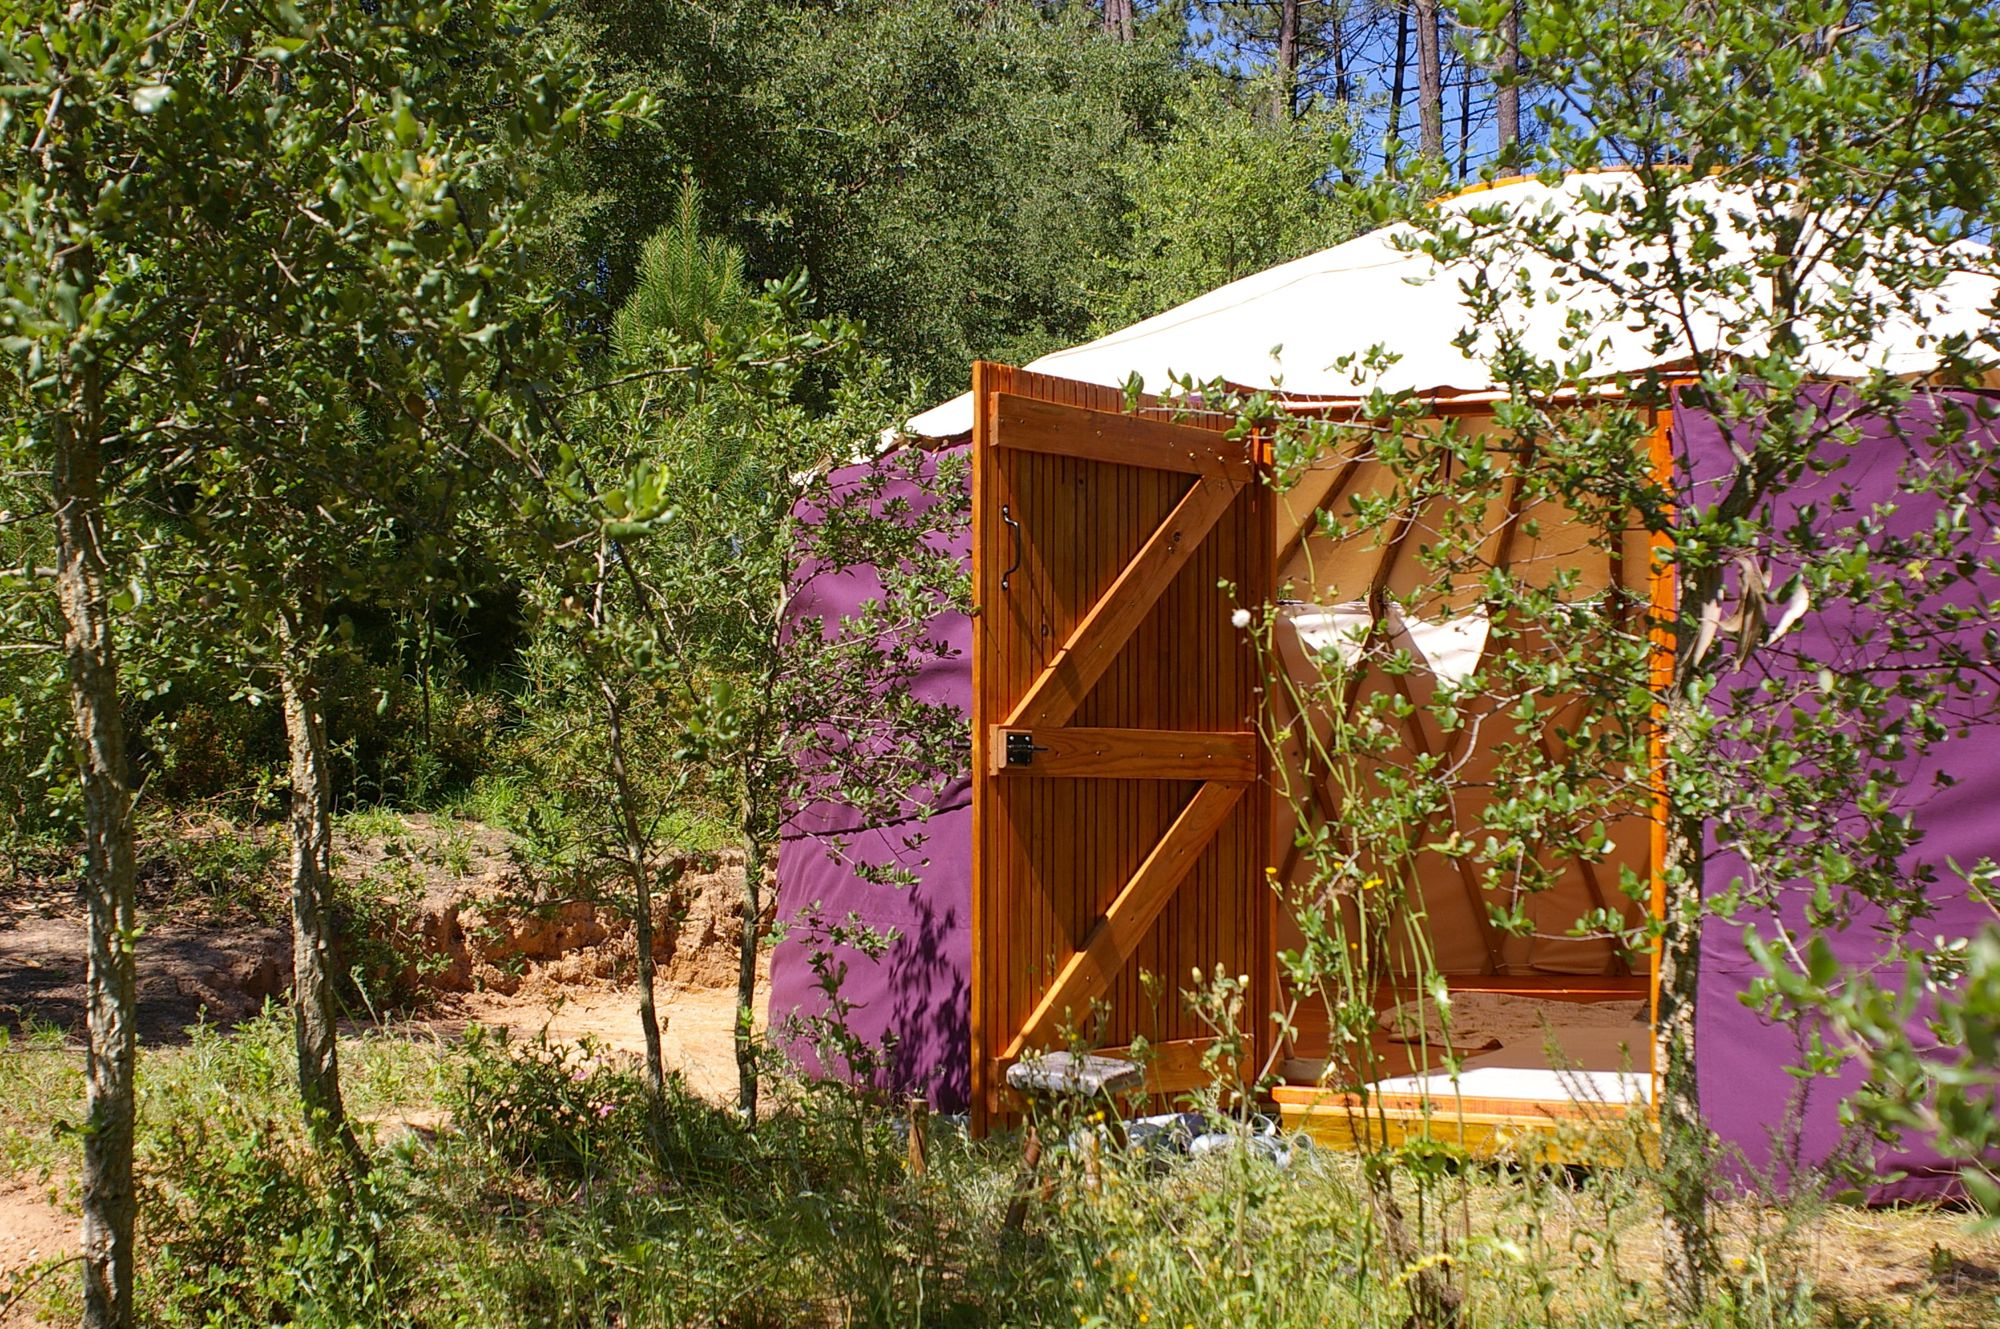 Campsites in Central Portugal – Cool Camping